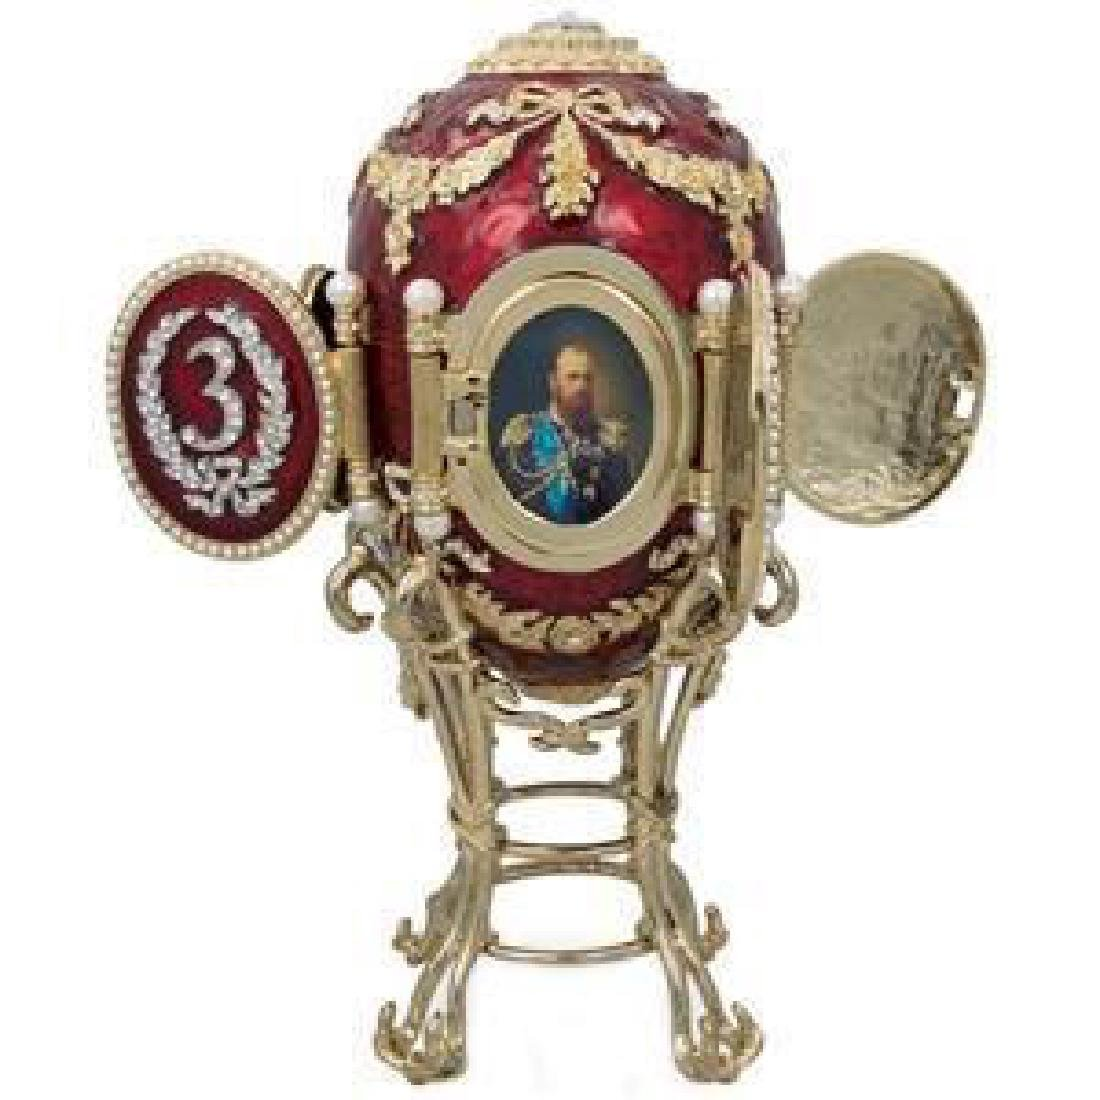 Faberge-inspired 1893 Caucasus Faberge Egg